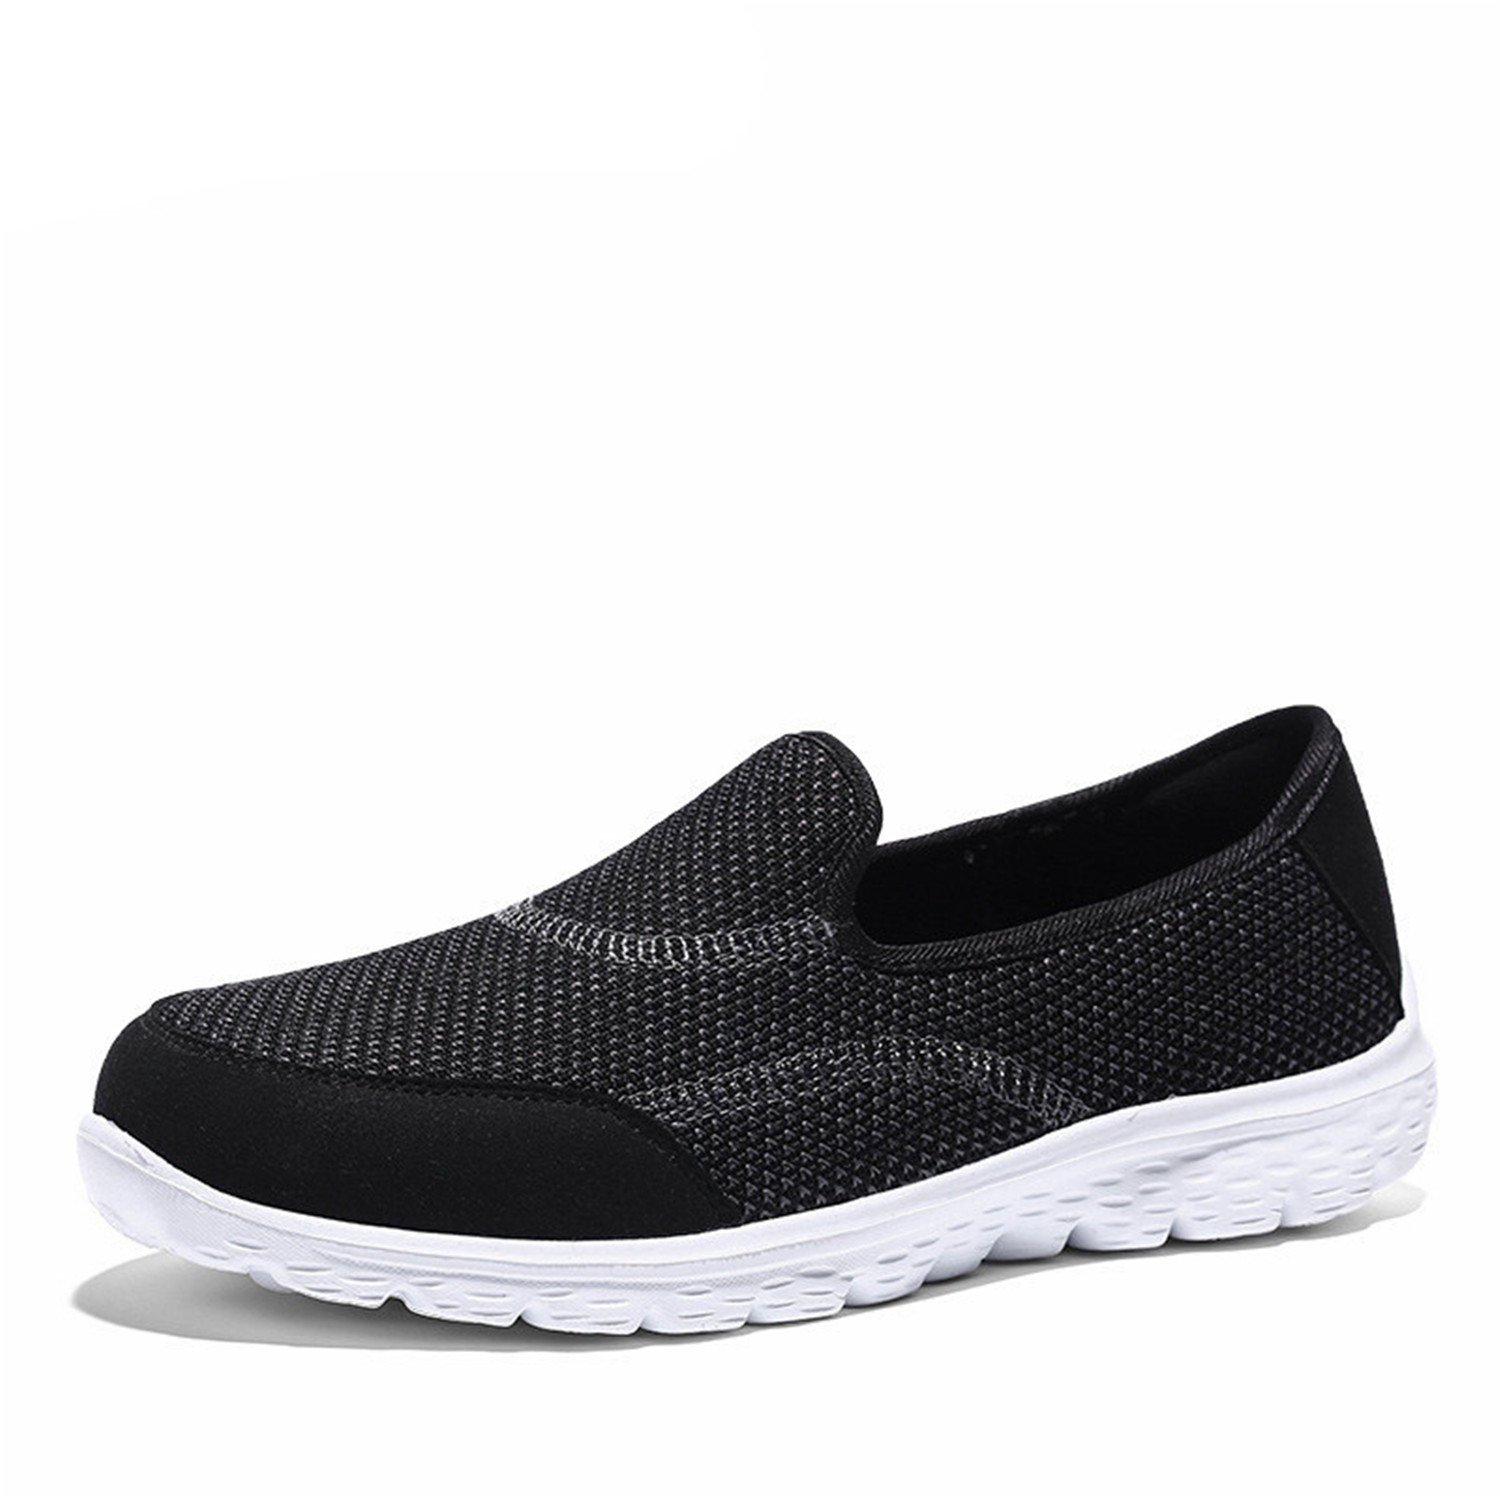 Mandaartins Womens Air Mesh Loafers Slip-On Shoe Light Comfortable Soft Driving Shoes